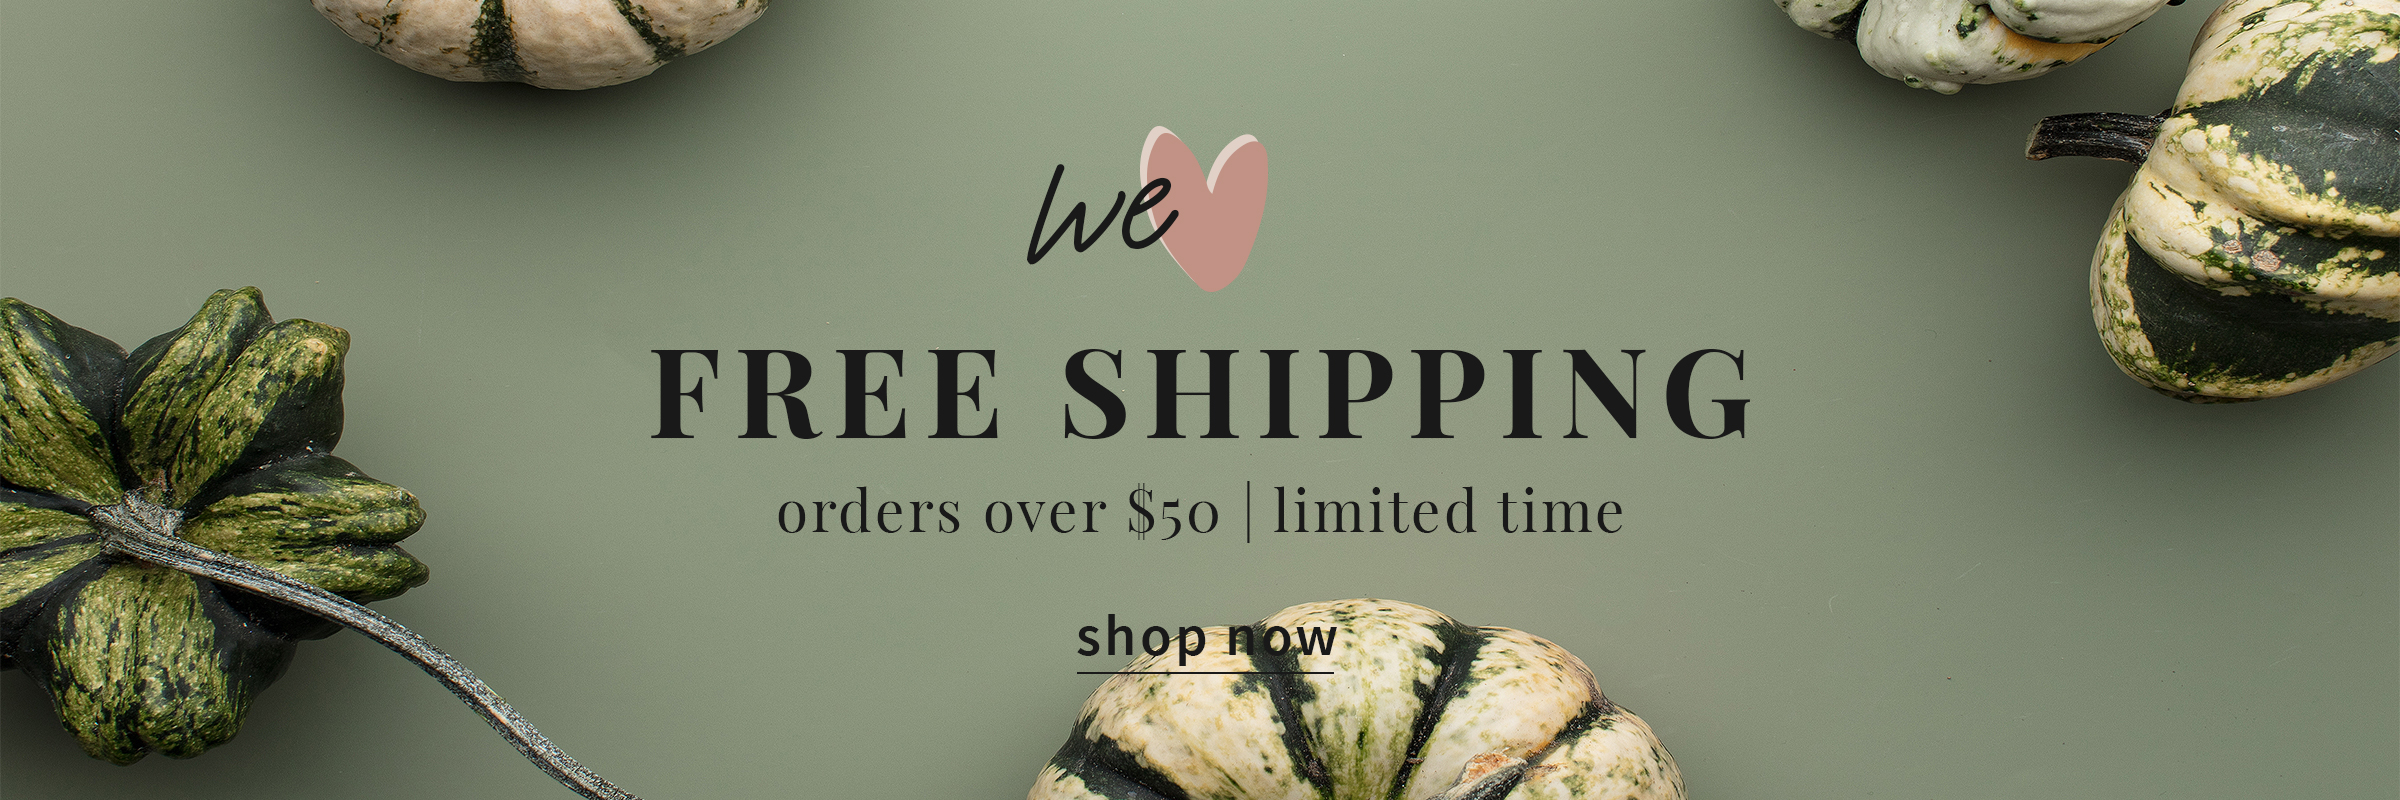 Free-Shipping-Fall-Announcement